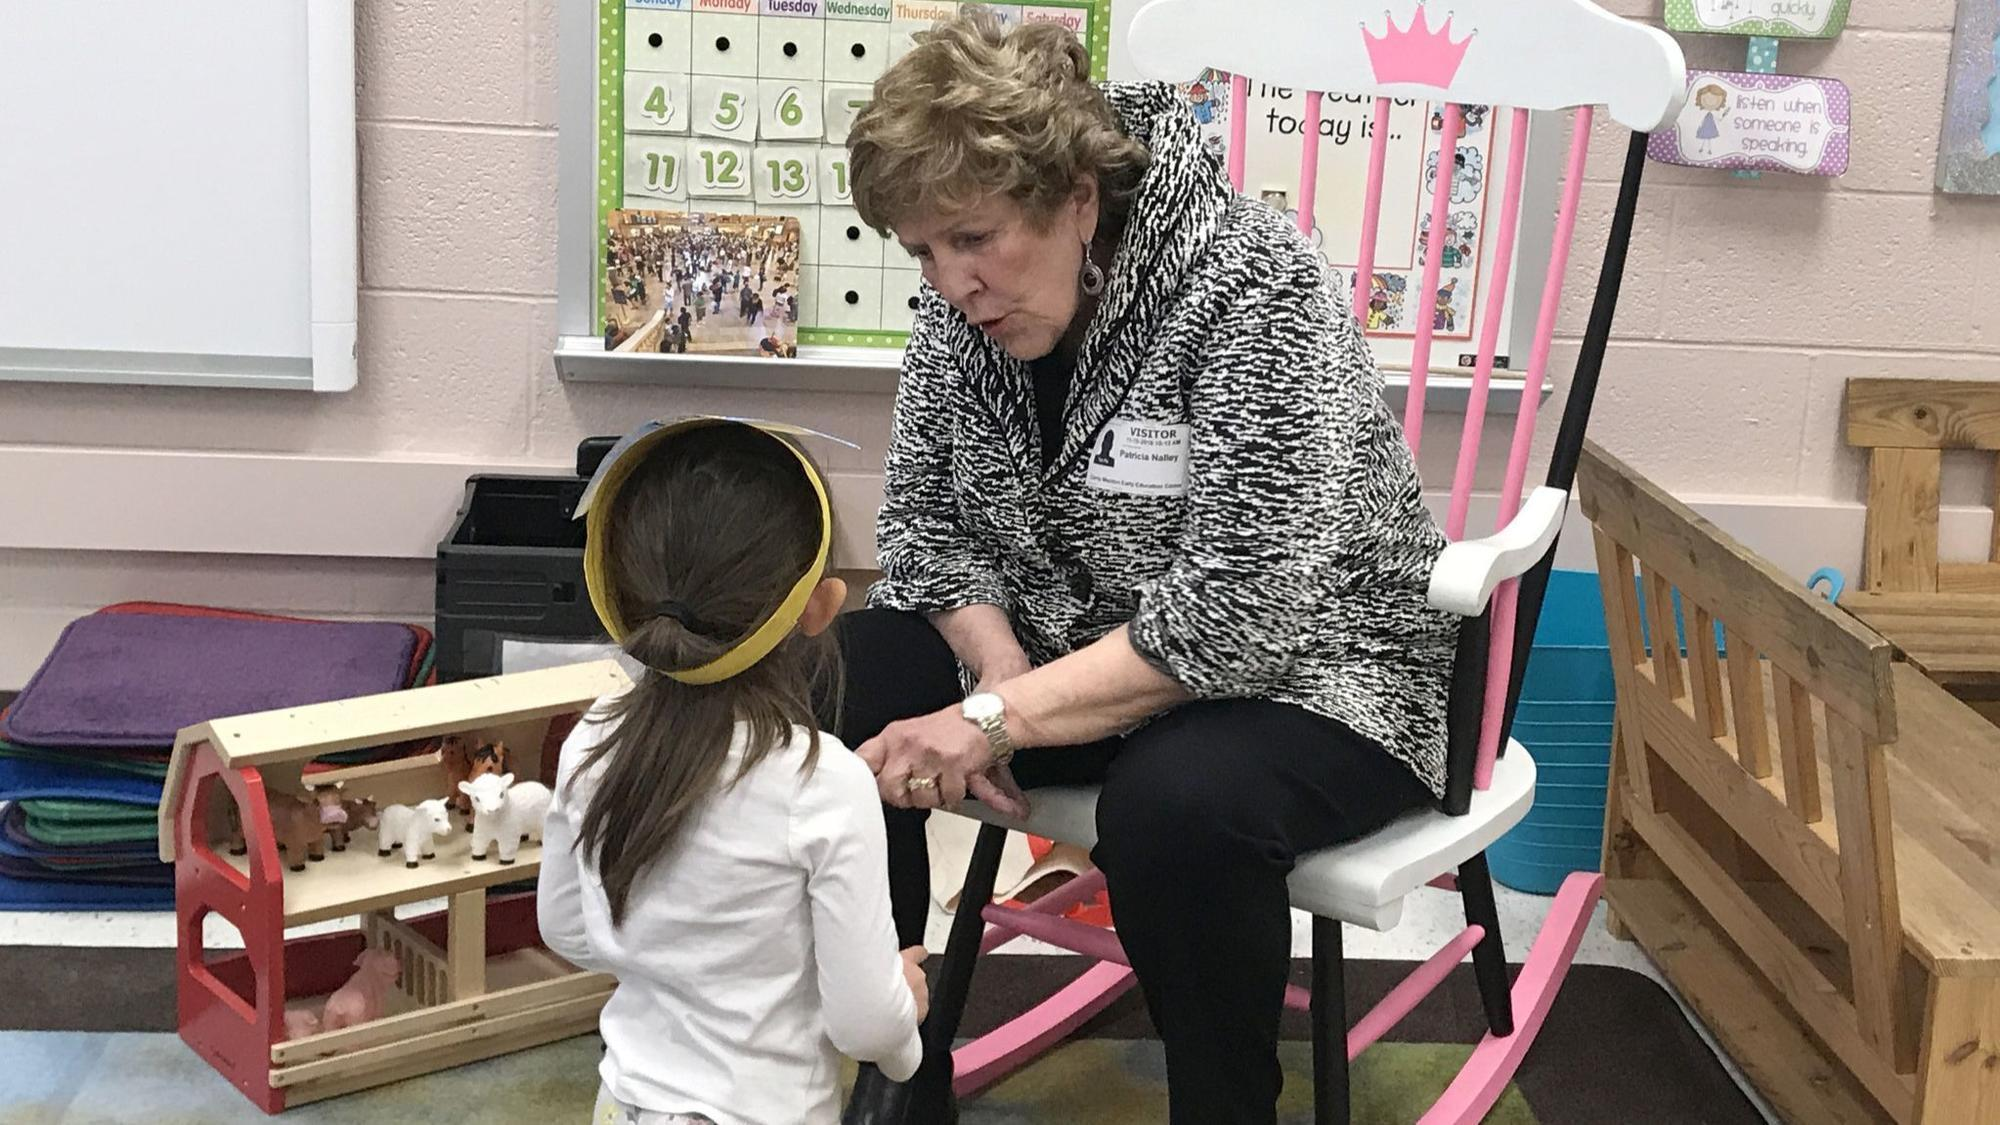 After nearly 50 years in county schools, Nalley spends final days as board member with children